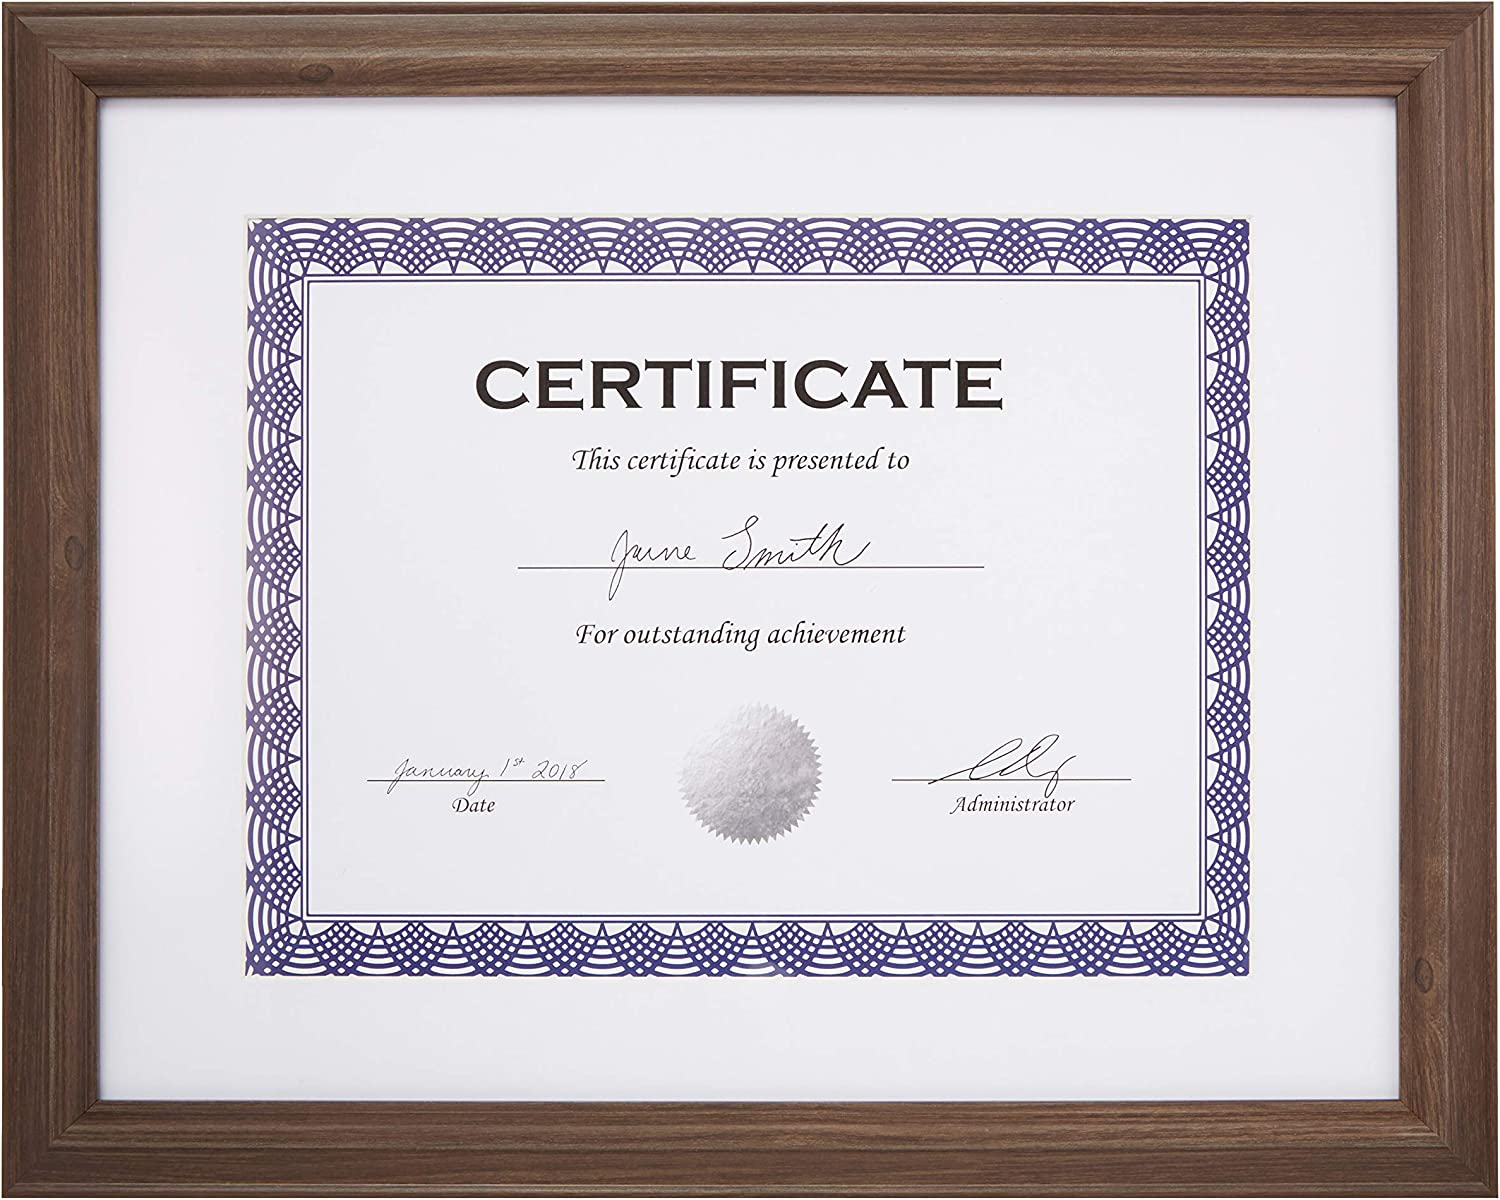 Amazon Basics Certificate Document Frame With x 8.5